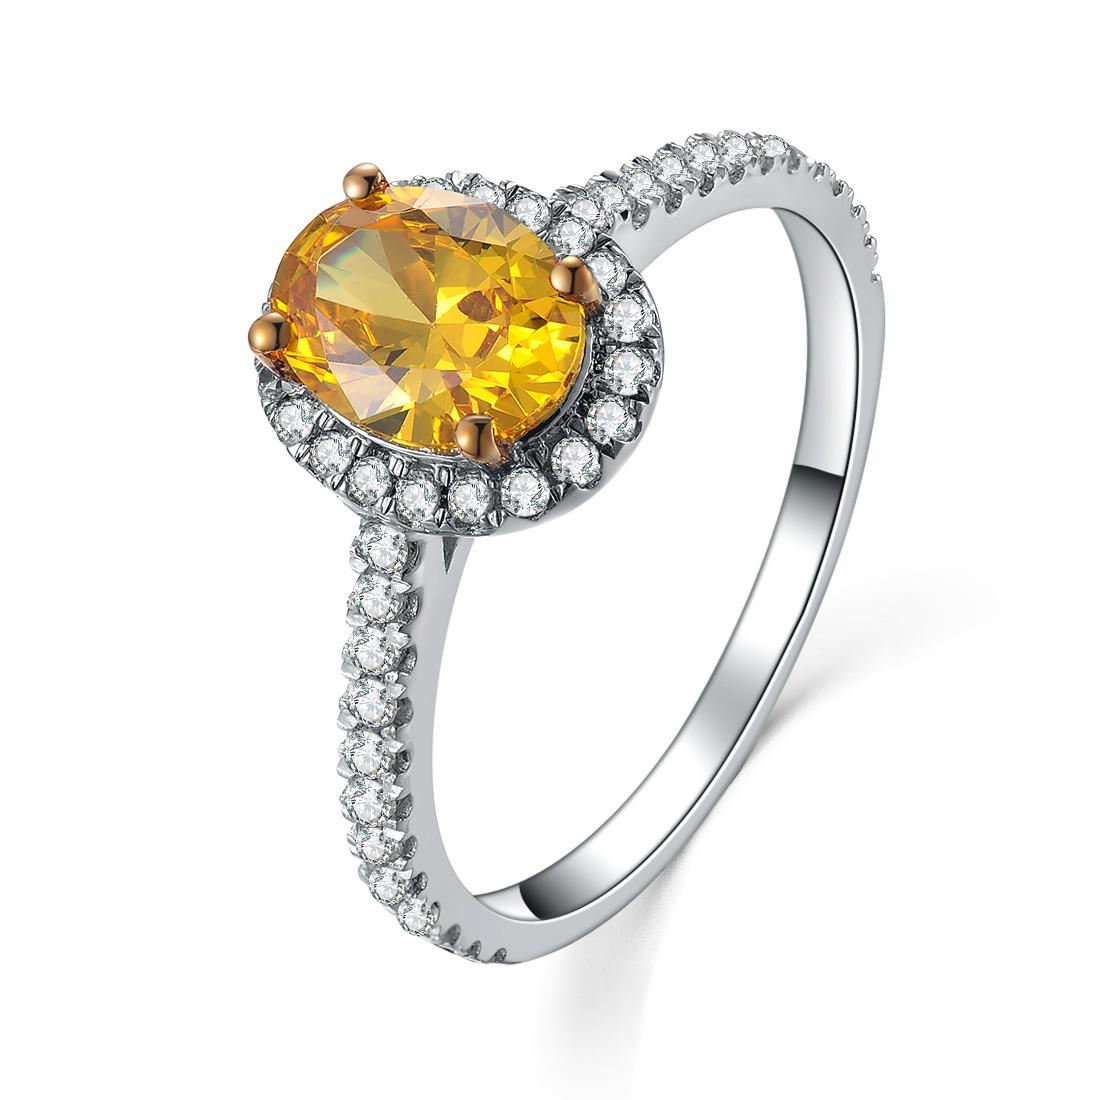 29def88de 2019 Vintage 2Ct Yellow Oval Cut Paved Synthetic Diamond Wedding Female Ring  Solid 925 Sterling Silver Ring White Gold Plated Jewelry From  Sonadiamondring, ...